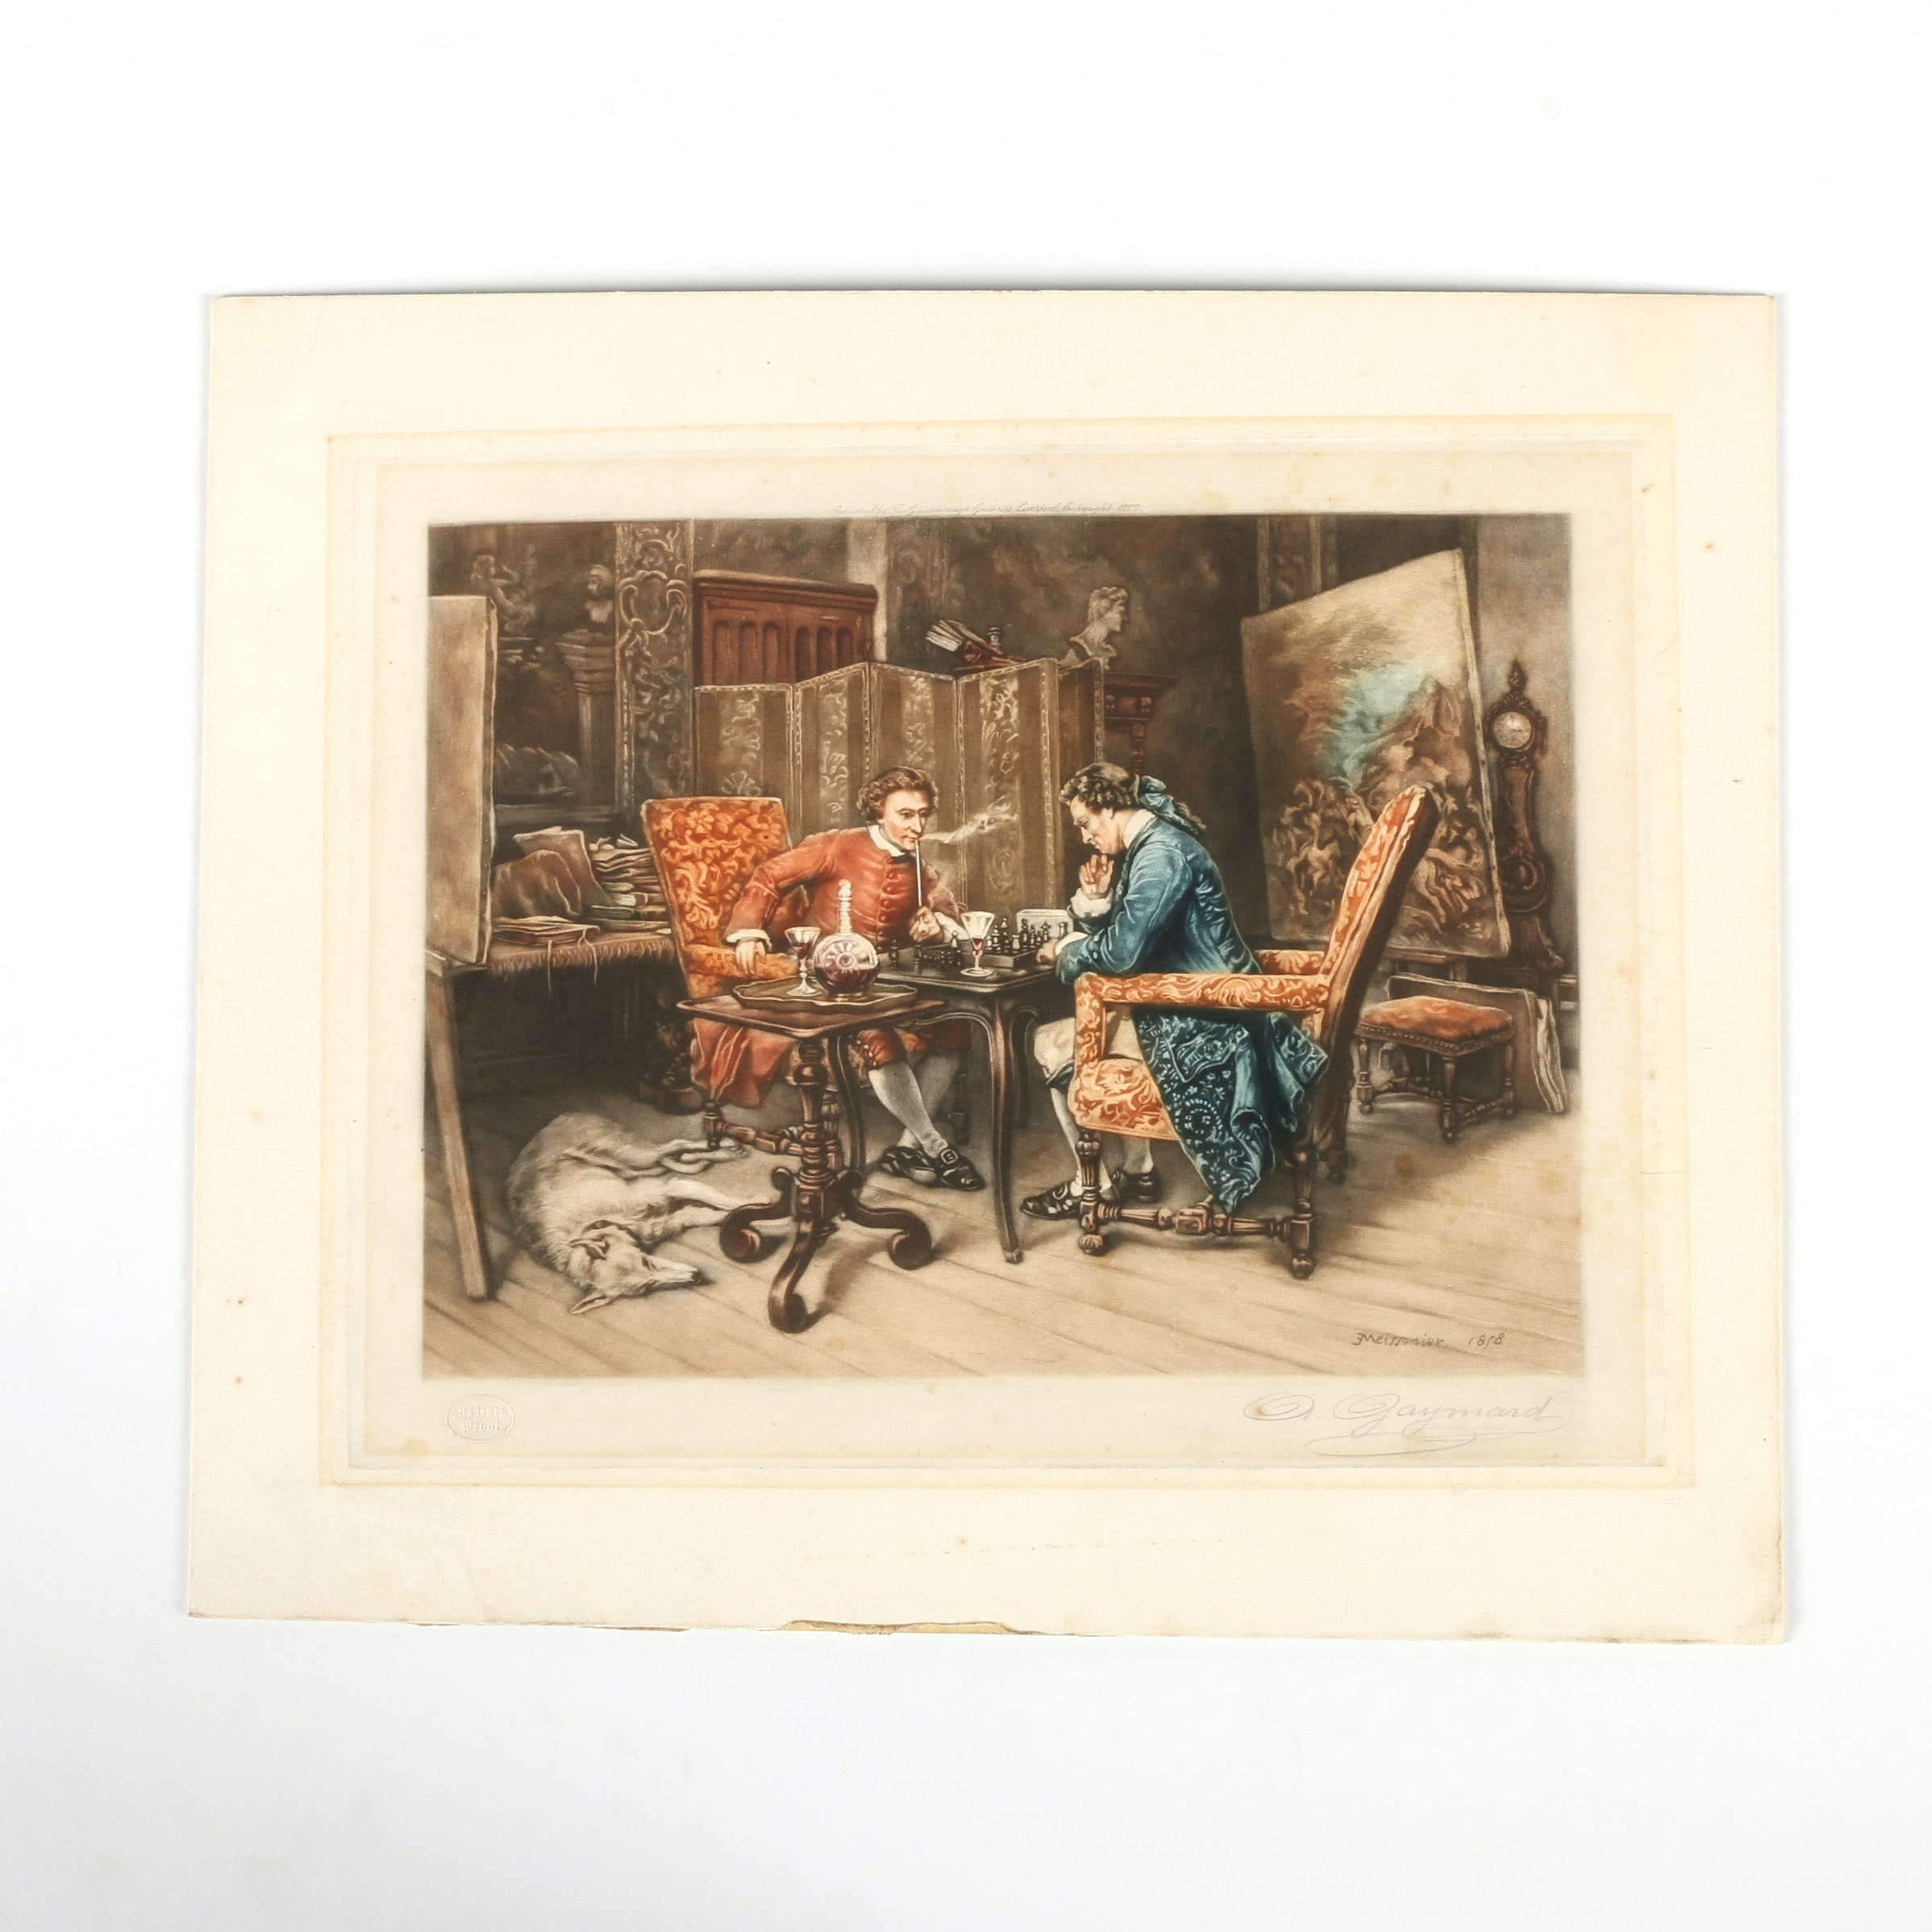 Antoine Gaymard Reproduction Print on Panel After Jean Meissonier